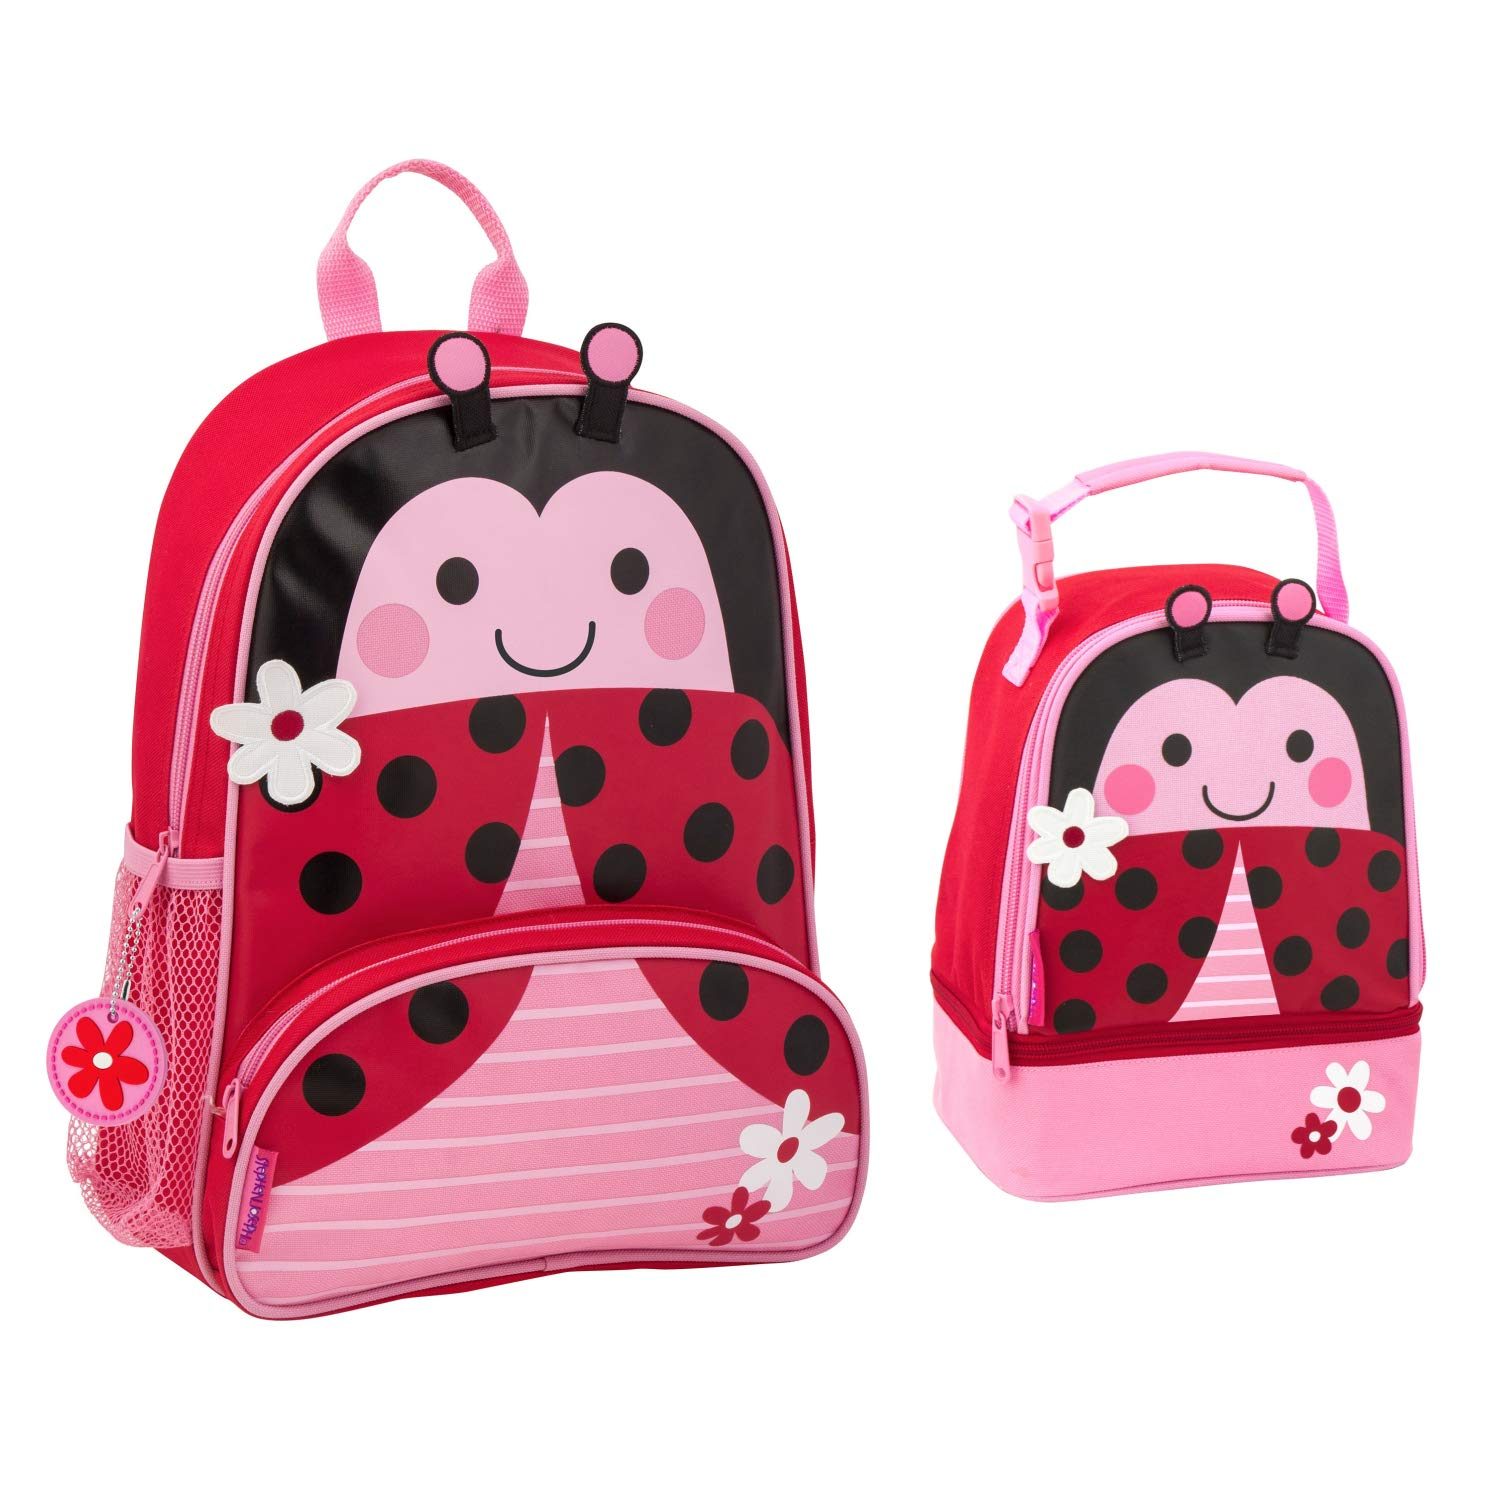 Stephen Joseph Girls Sidekick Ladybug Backpack